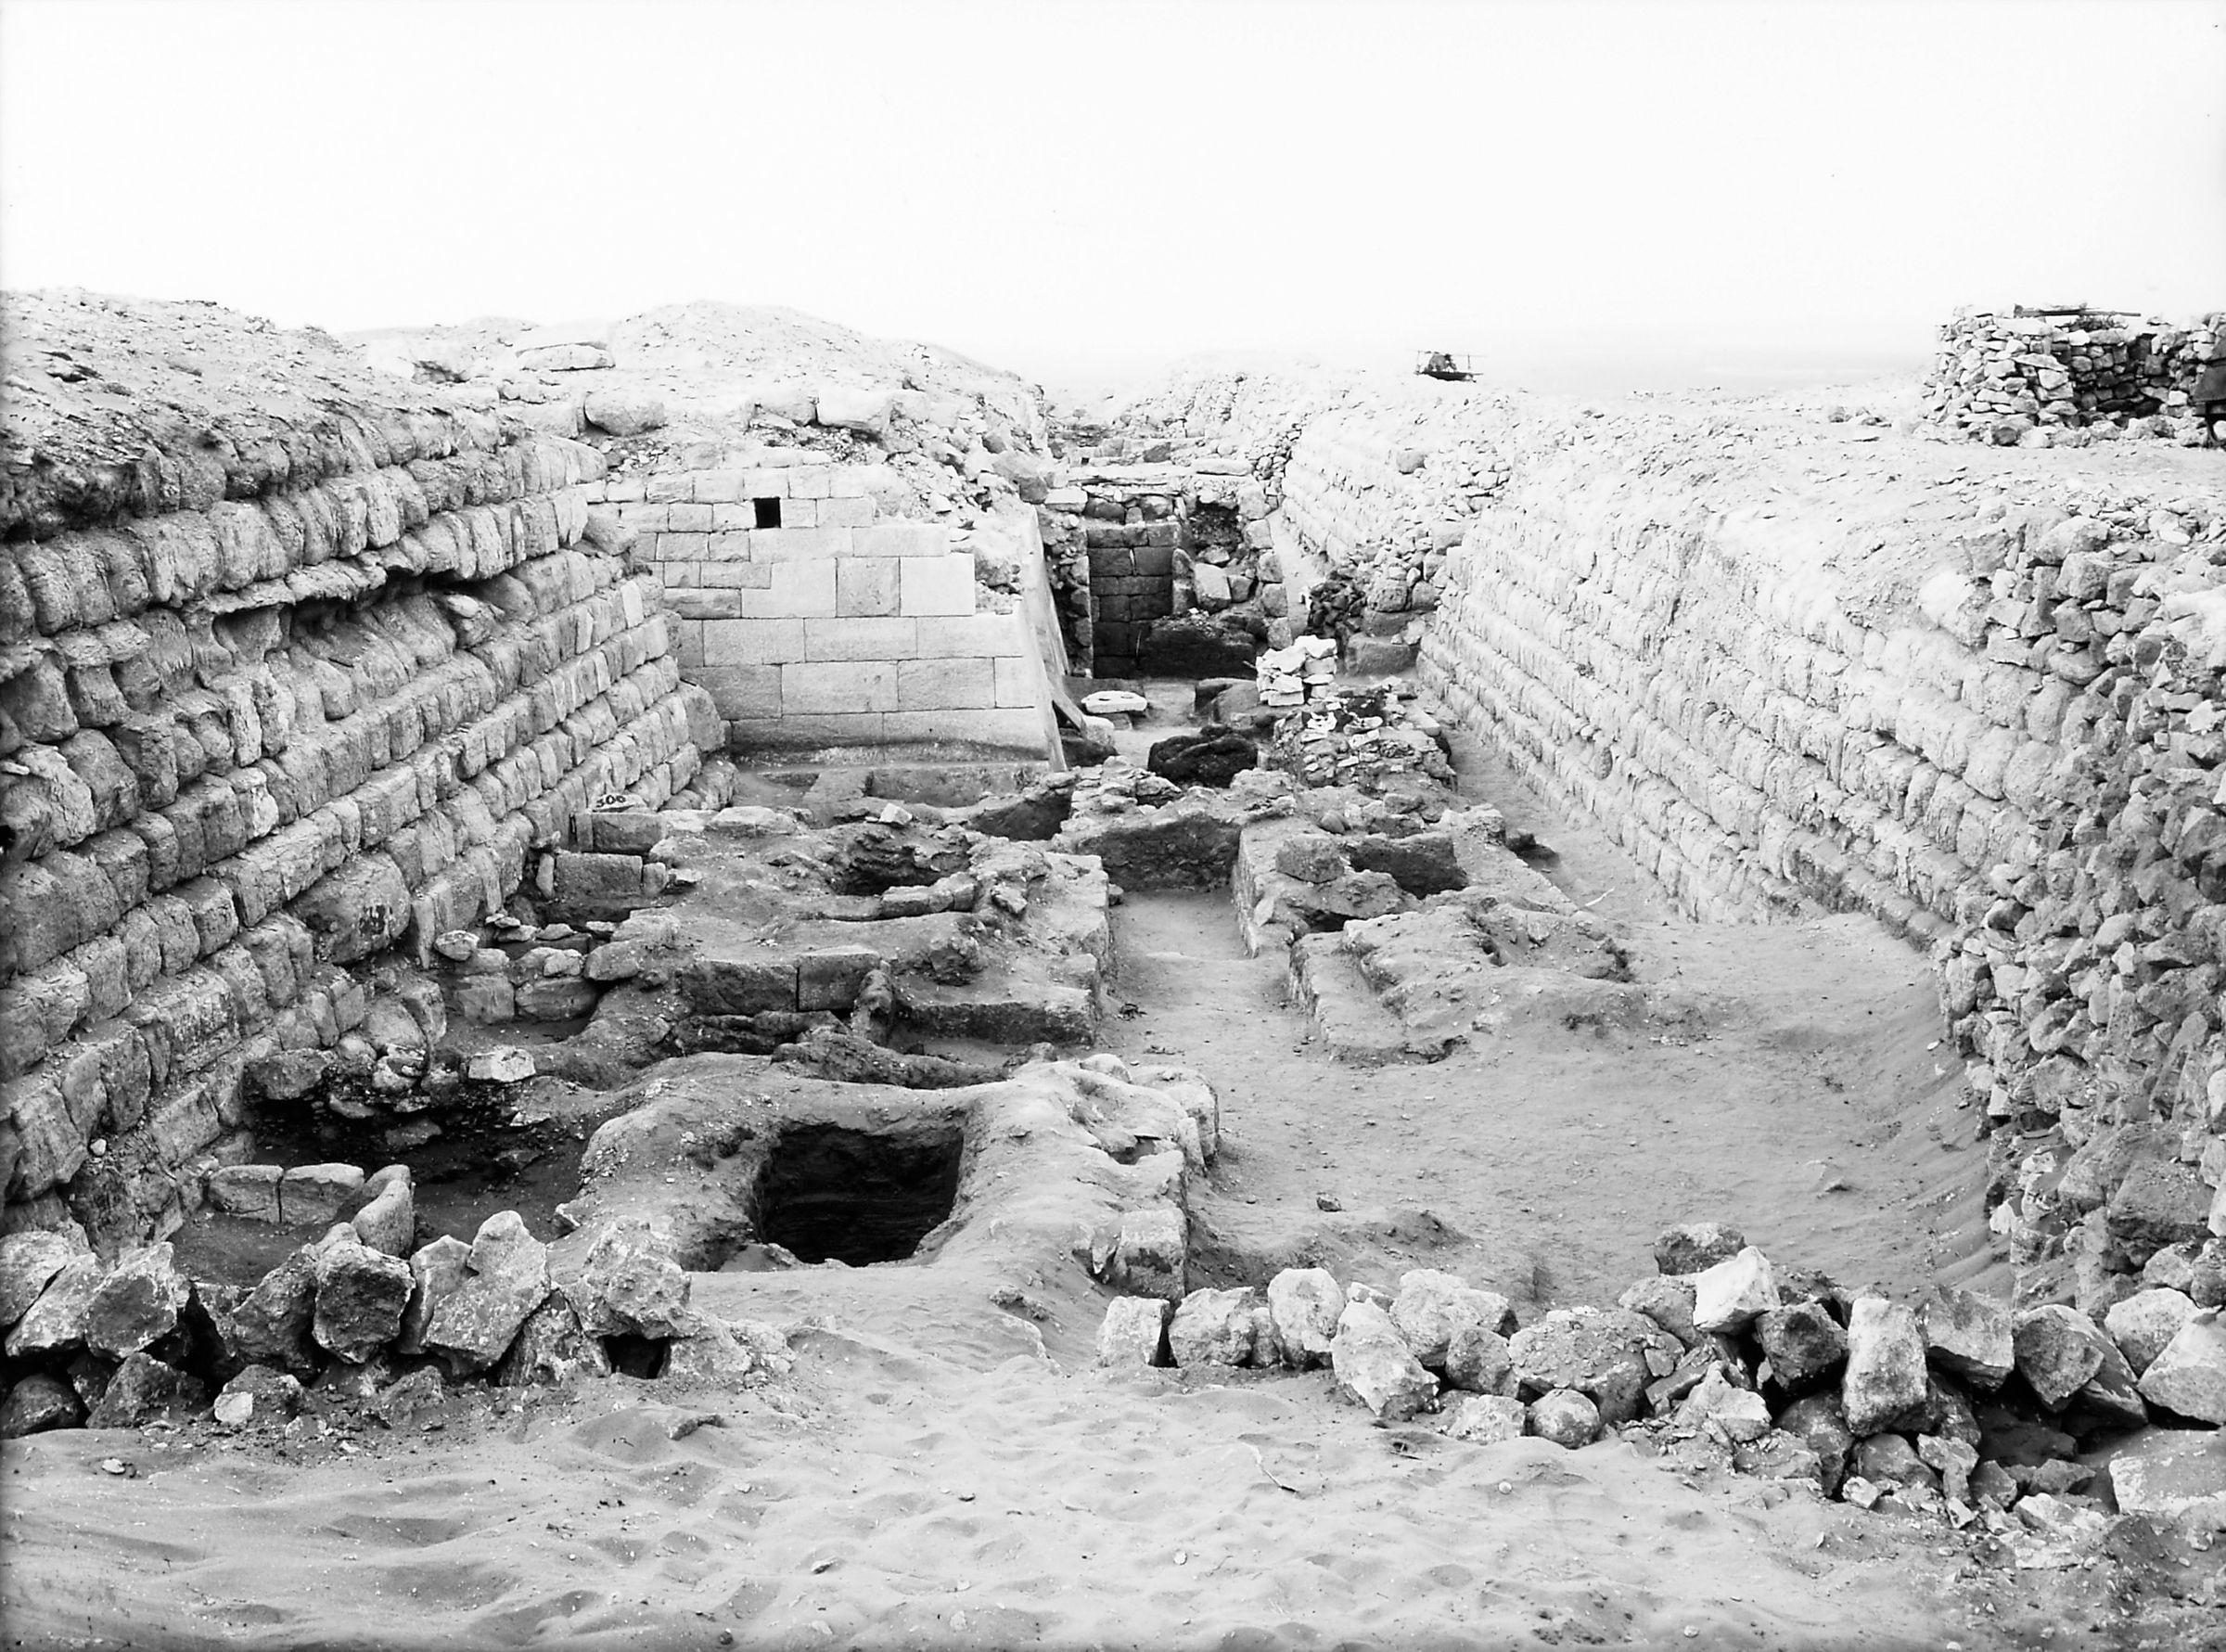 Western Cemetery: Site: Giza; View: G 4860, G 4970, S 304, S 299/303, G 2155, G 2156